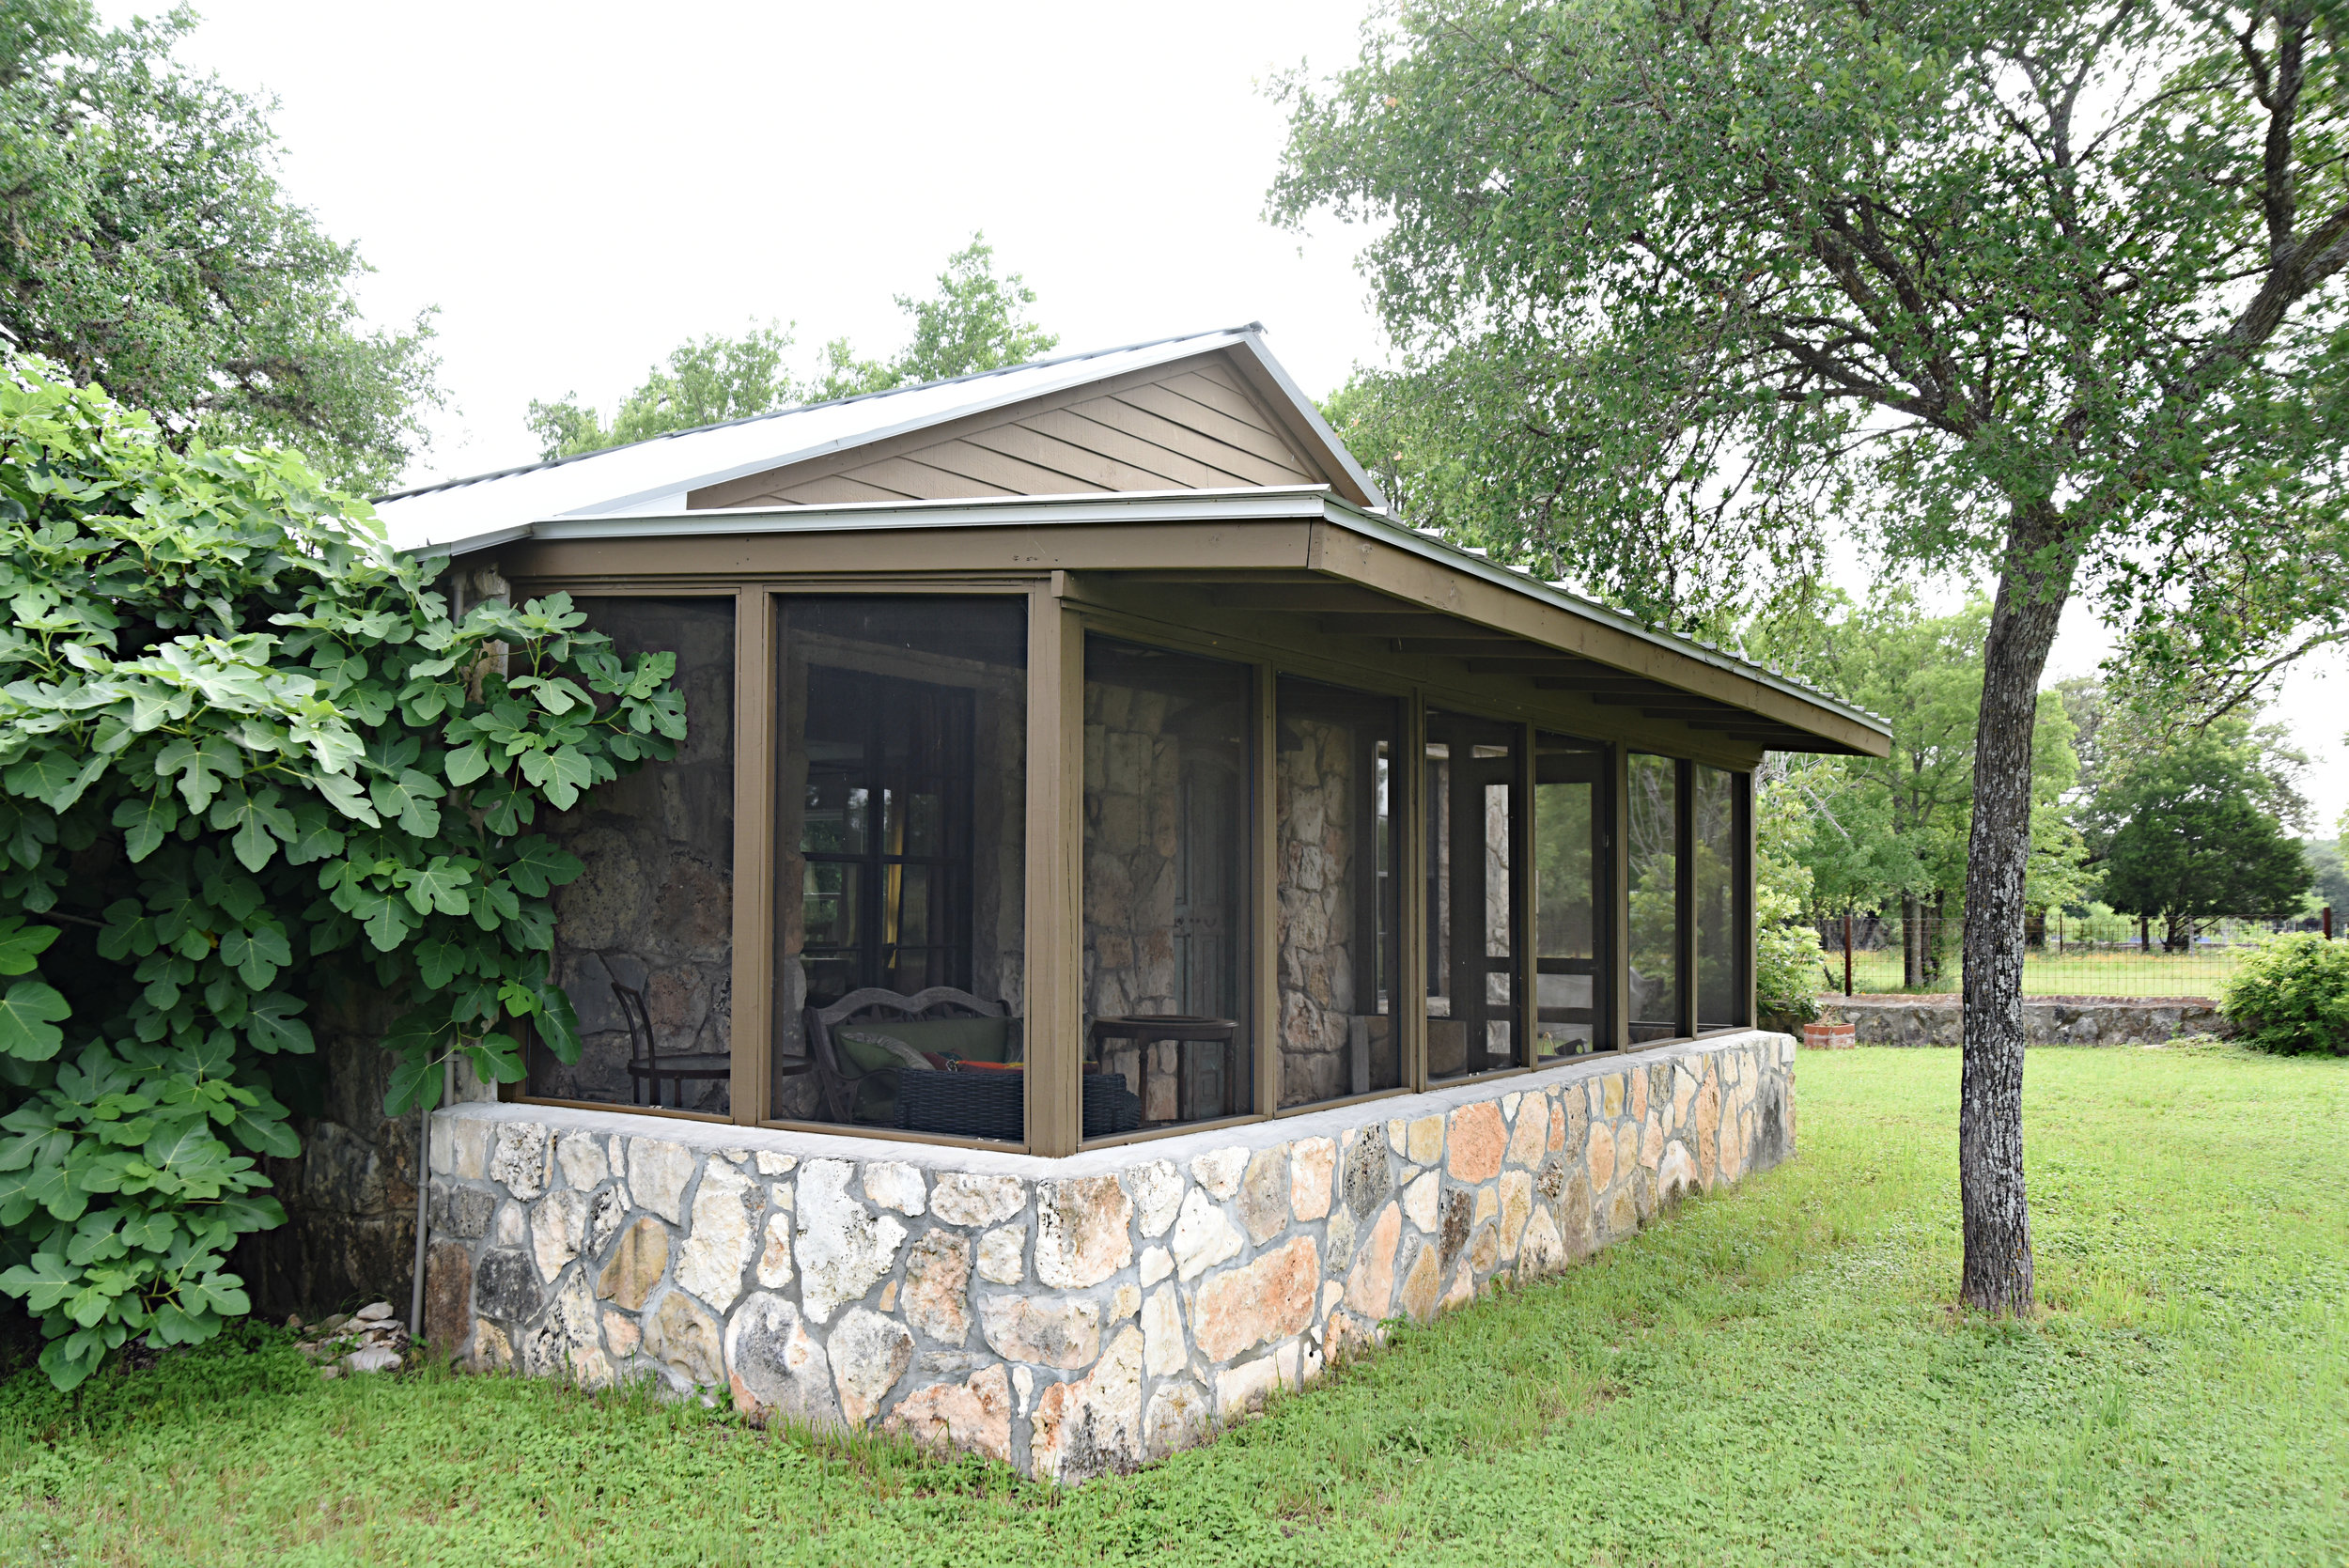 Book your stay at the Rockhouse at the beautiful Camino Ranchito in Wimberley Texas.